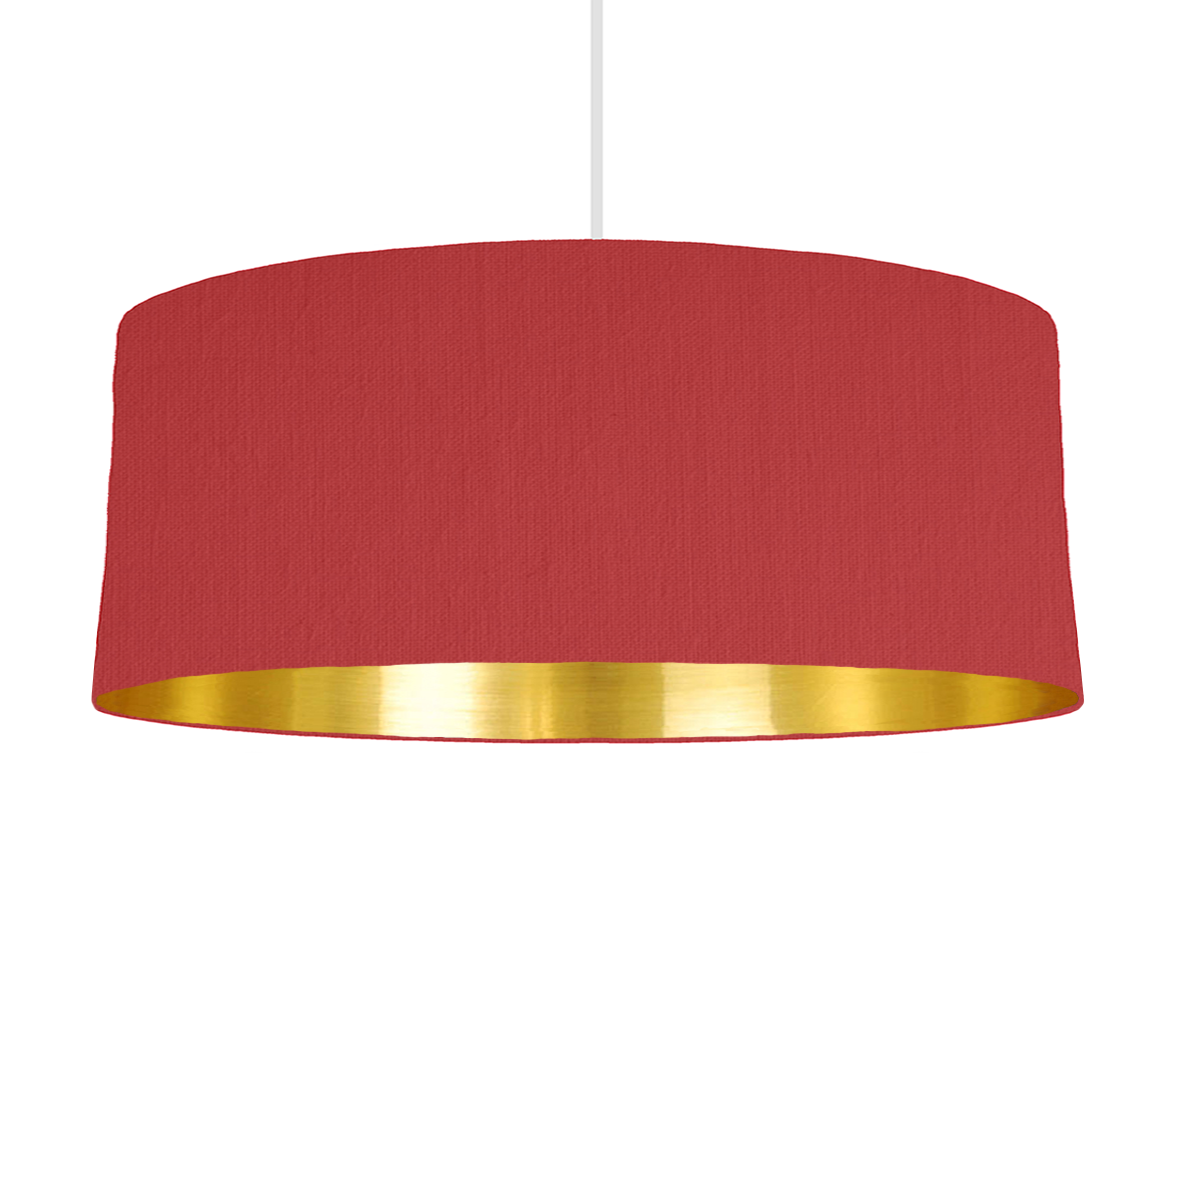 Red Gold Mirrored Lampshade 70cm Wide